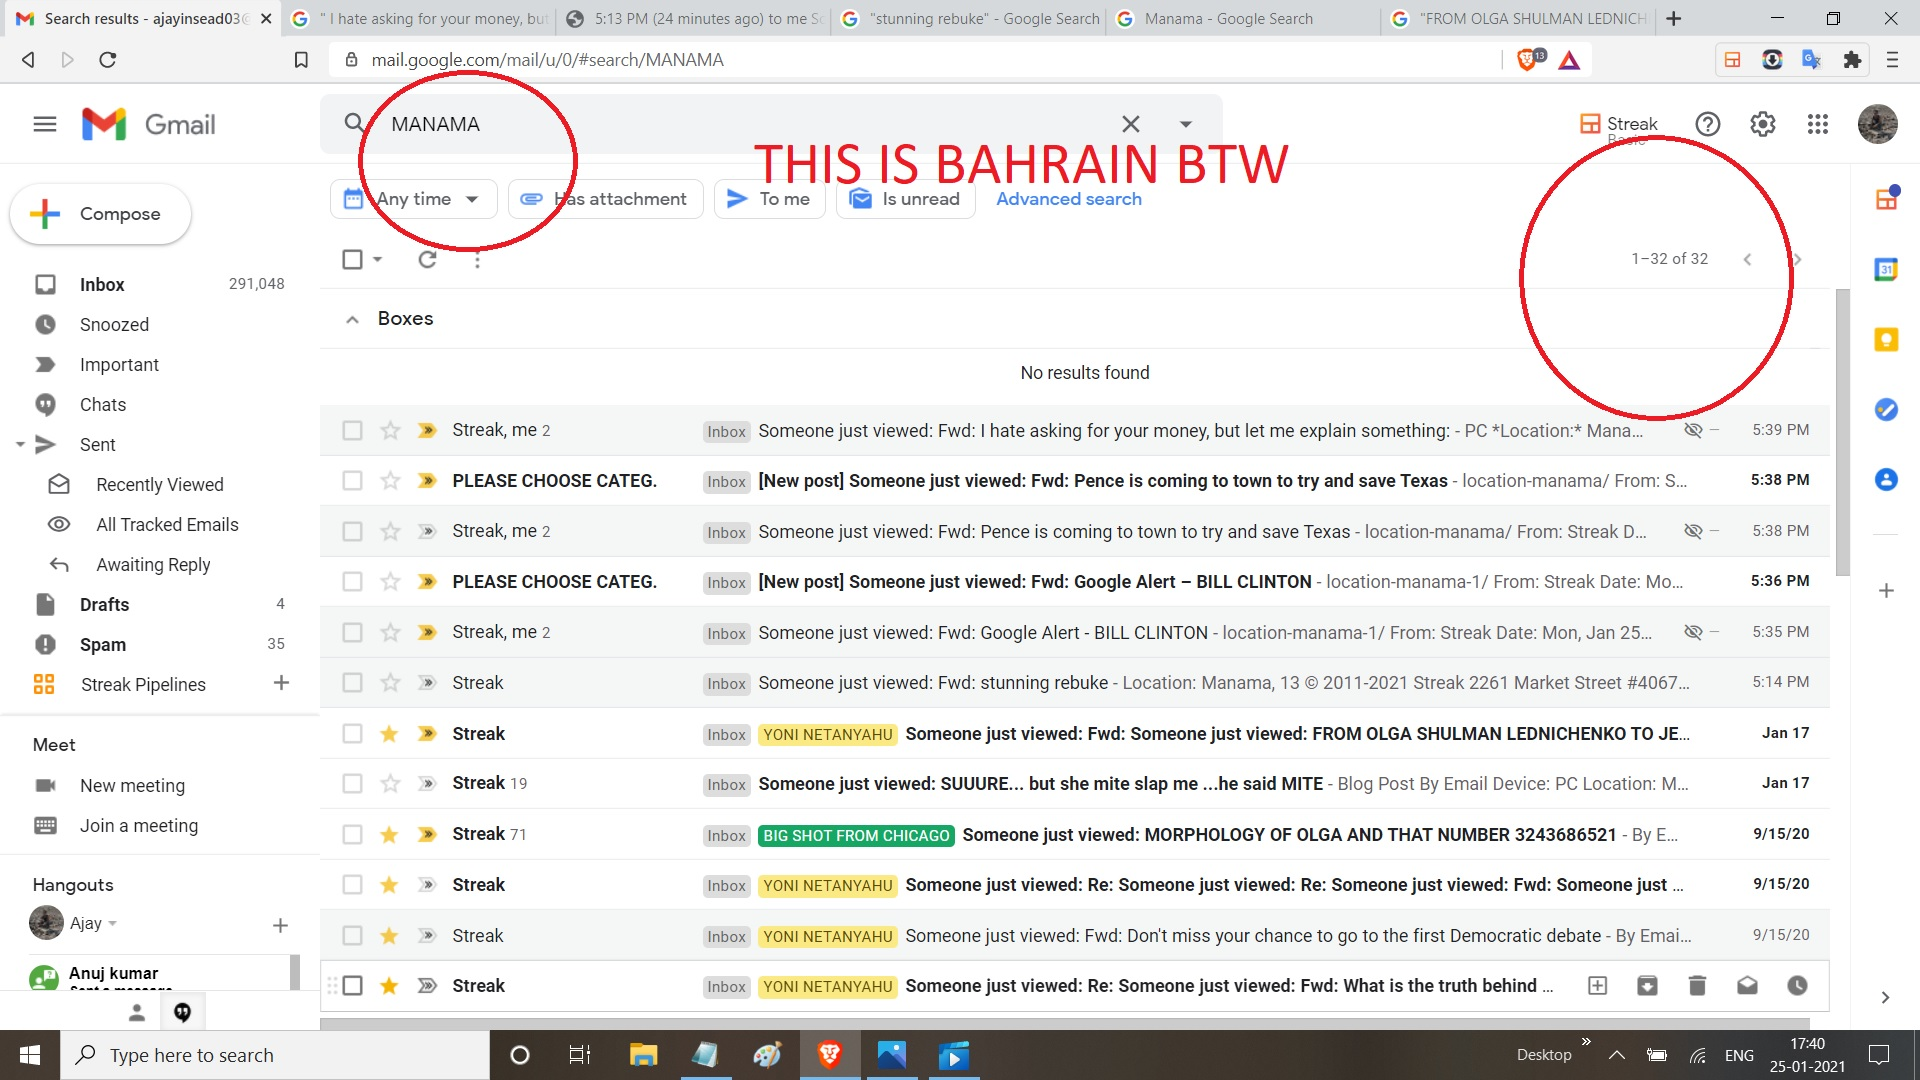 THIS IS BAHRAIN BTW